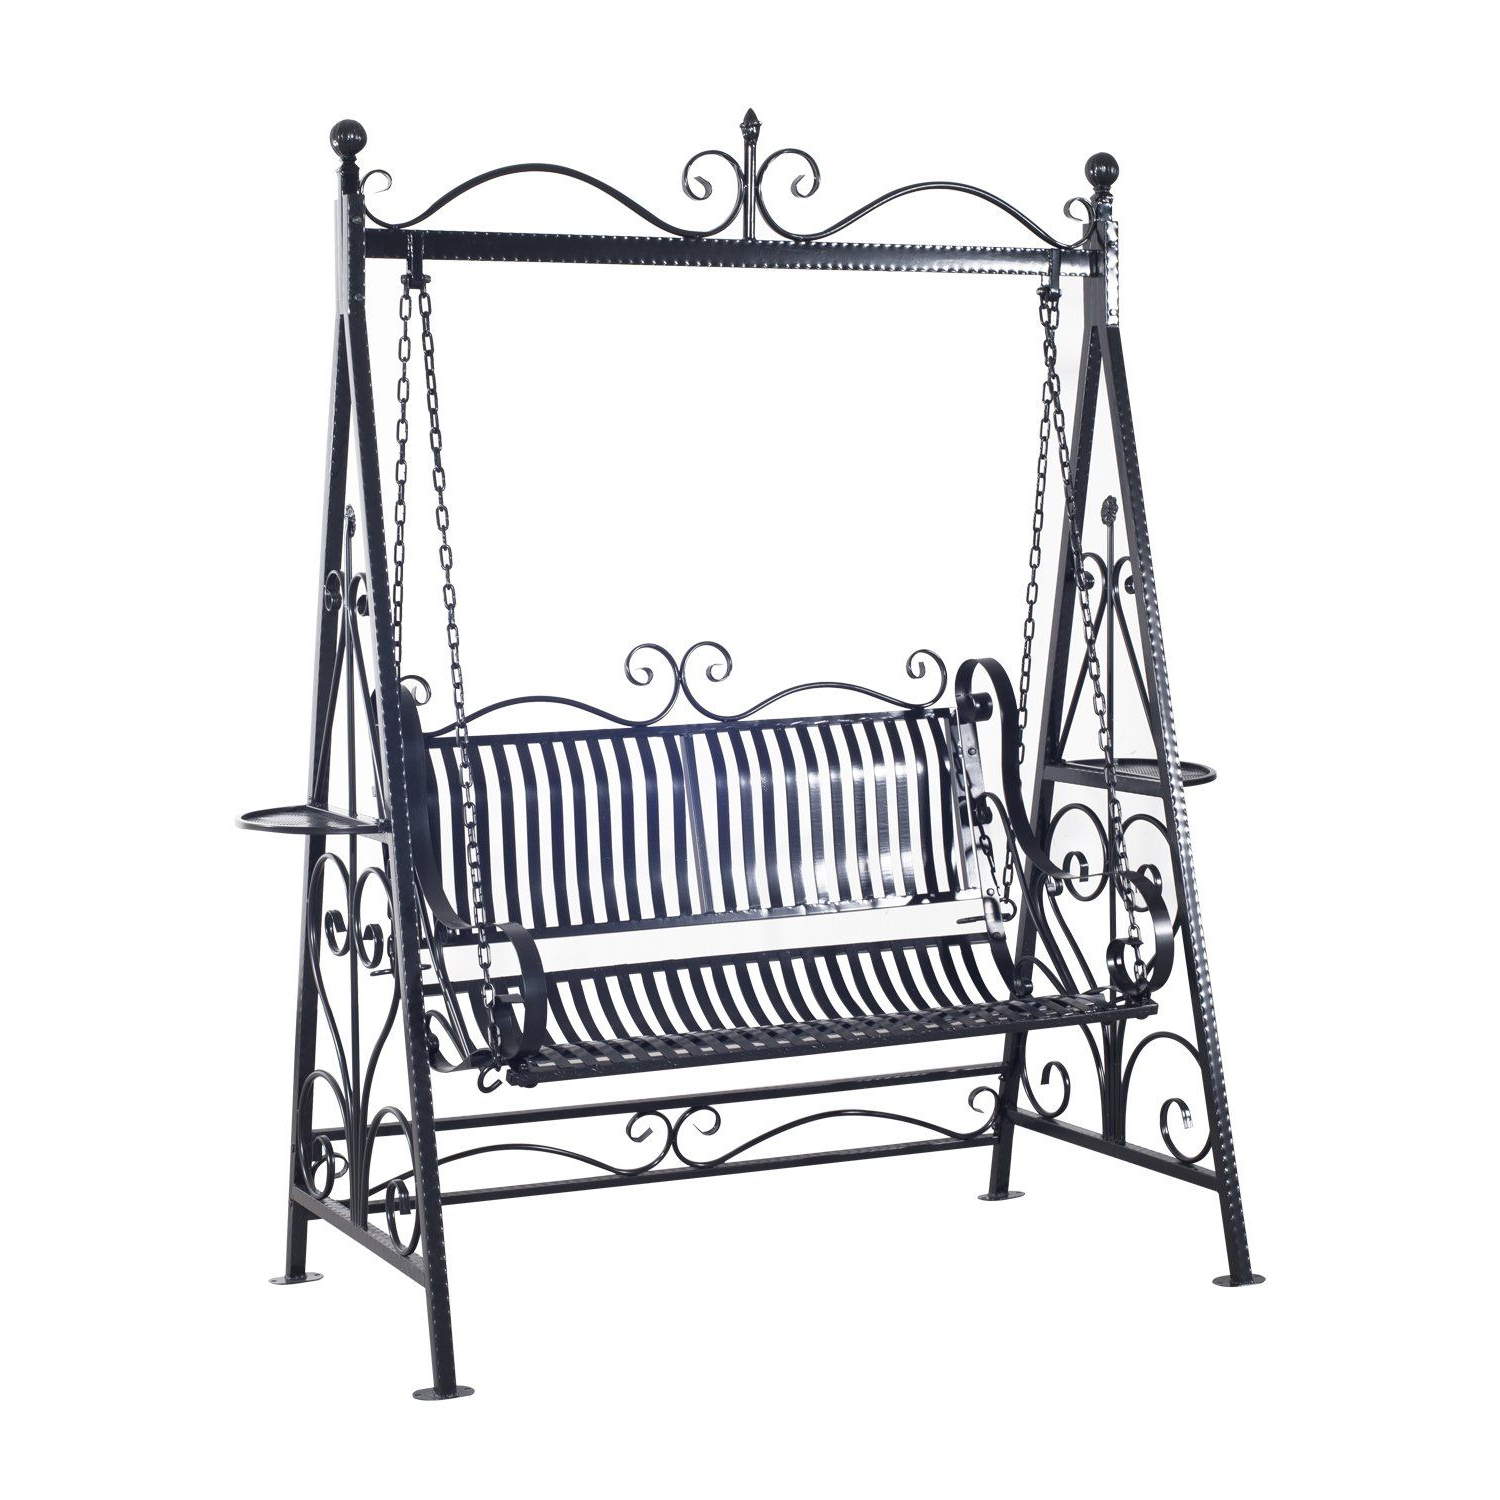 Widely Used 2 Person Hammered Bronze Iron Outdoor Swings With Regard To Outsunny Garden Metal Swing Chair Outdoor Patio Hammock (View 4 of 25)